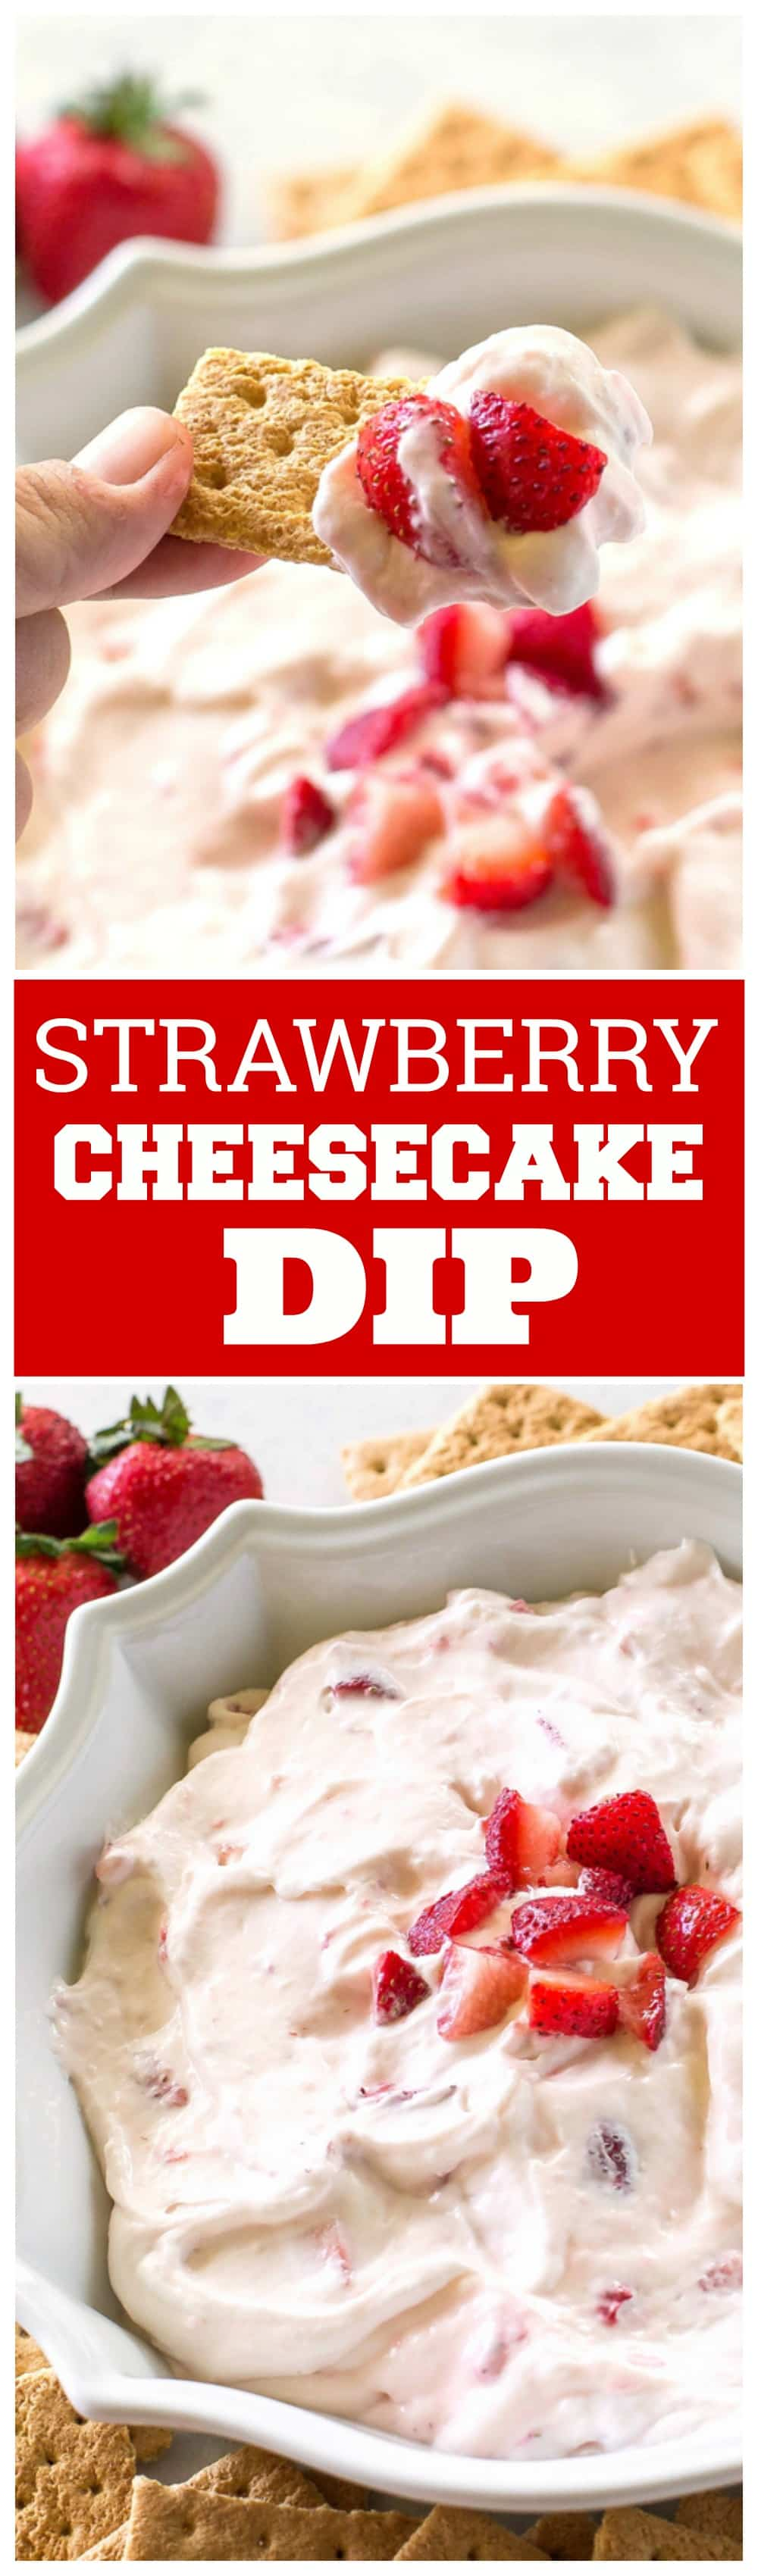 Strawberry Cheesecake Dip made with fresh strawberries and fresh whipped cream! #strawberry #cheesecake #dip #summer #dessert